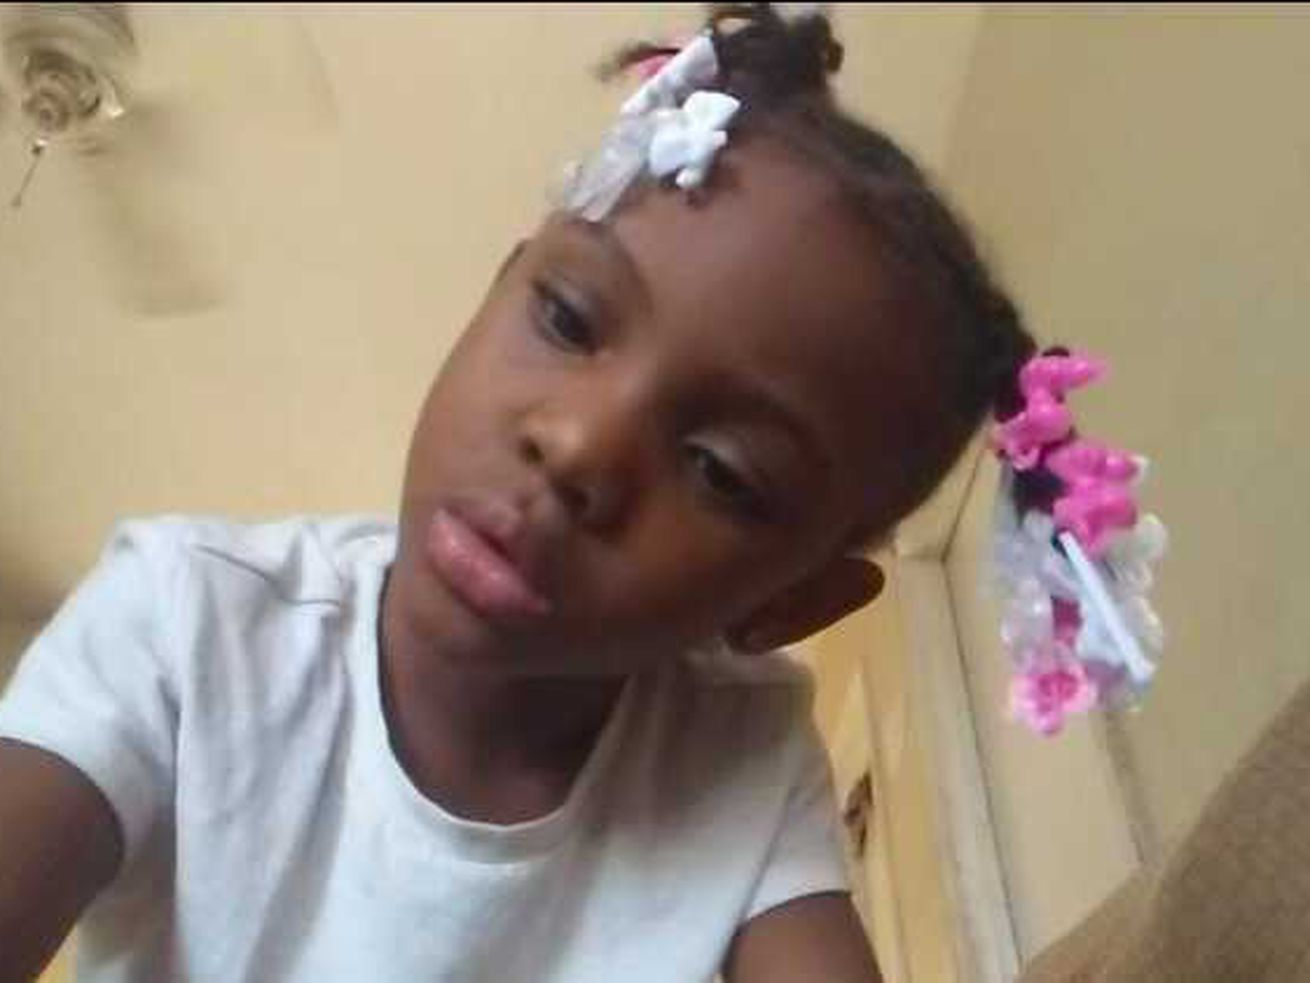 Jaslyn Adams, 7, was shot and killed while at a McDonald's Thursday afternoon with her father, Jontae Adams, 28, who was seriously wounded.